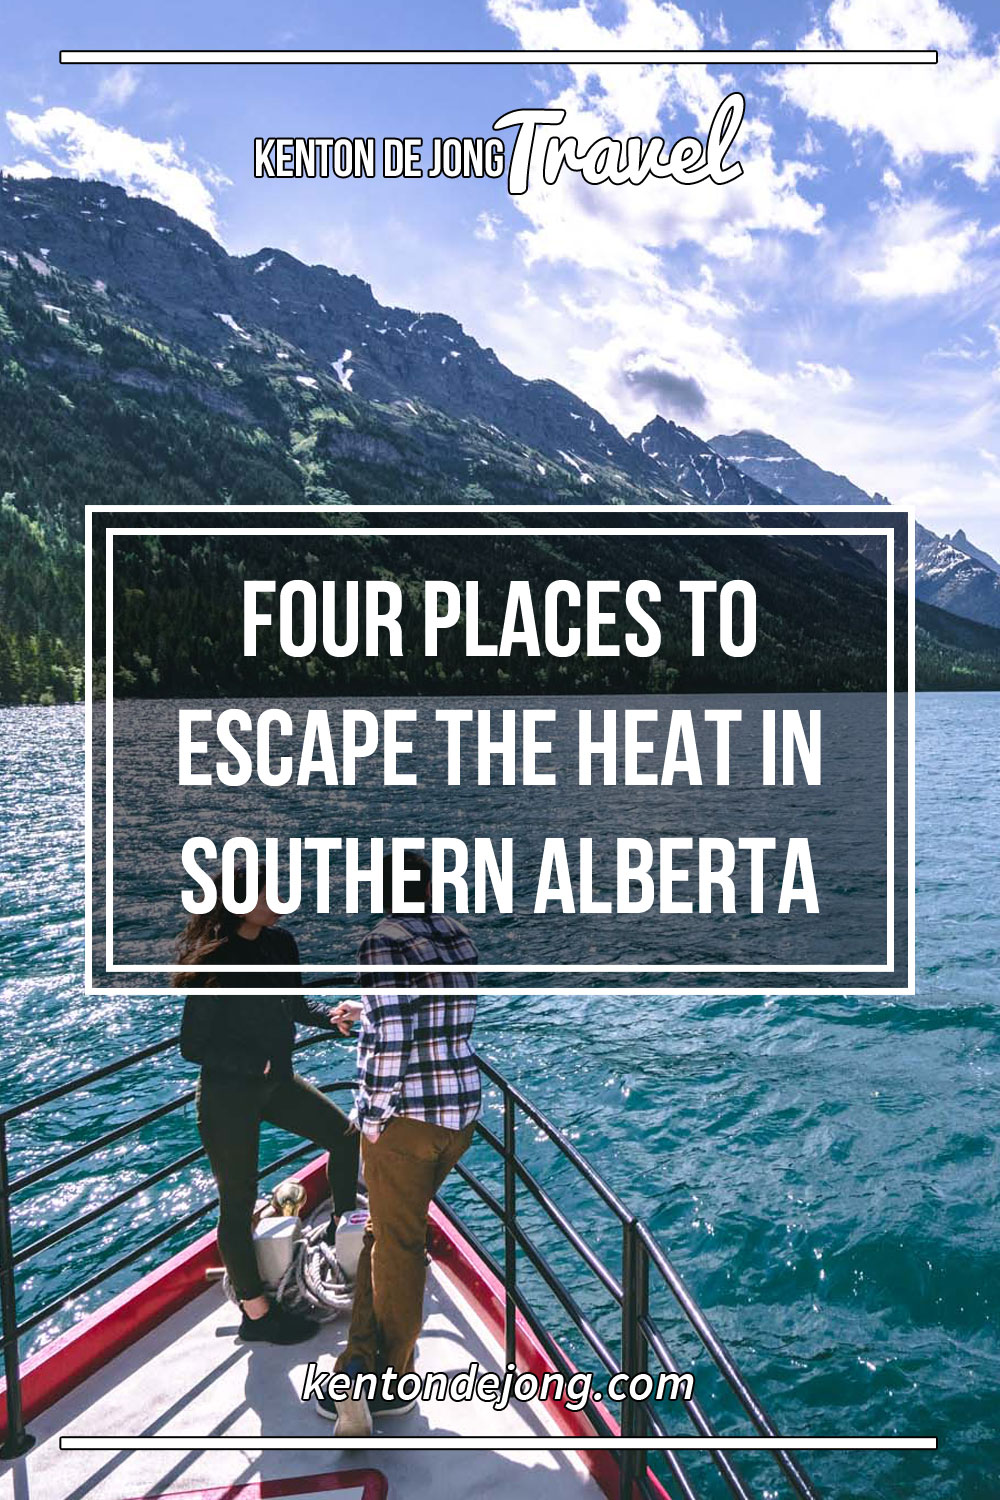 Four Places to Escape the Heat in Southern Alberta